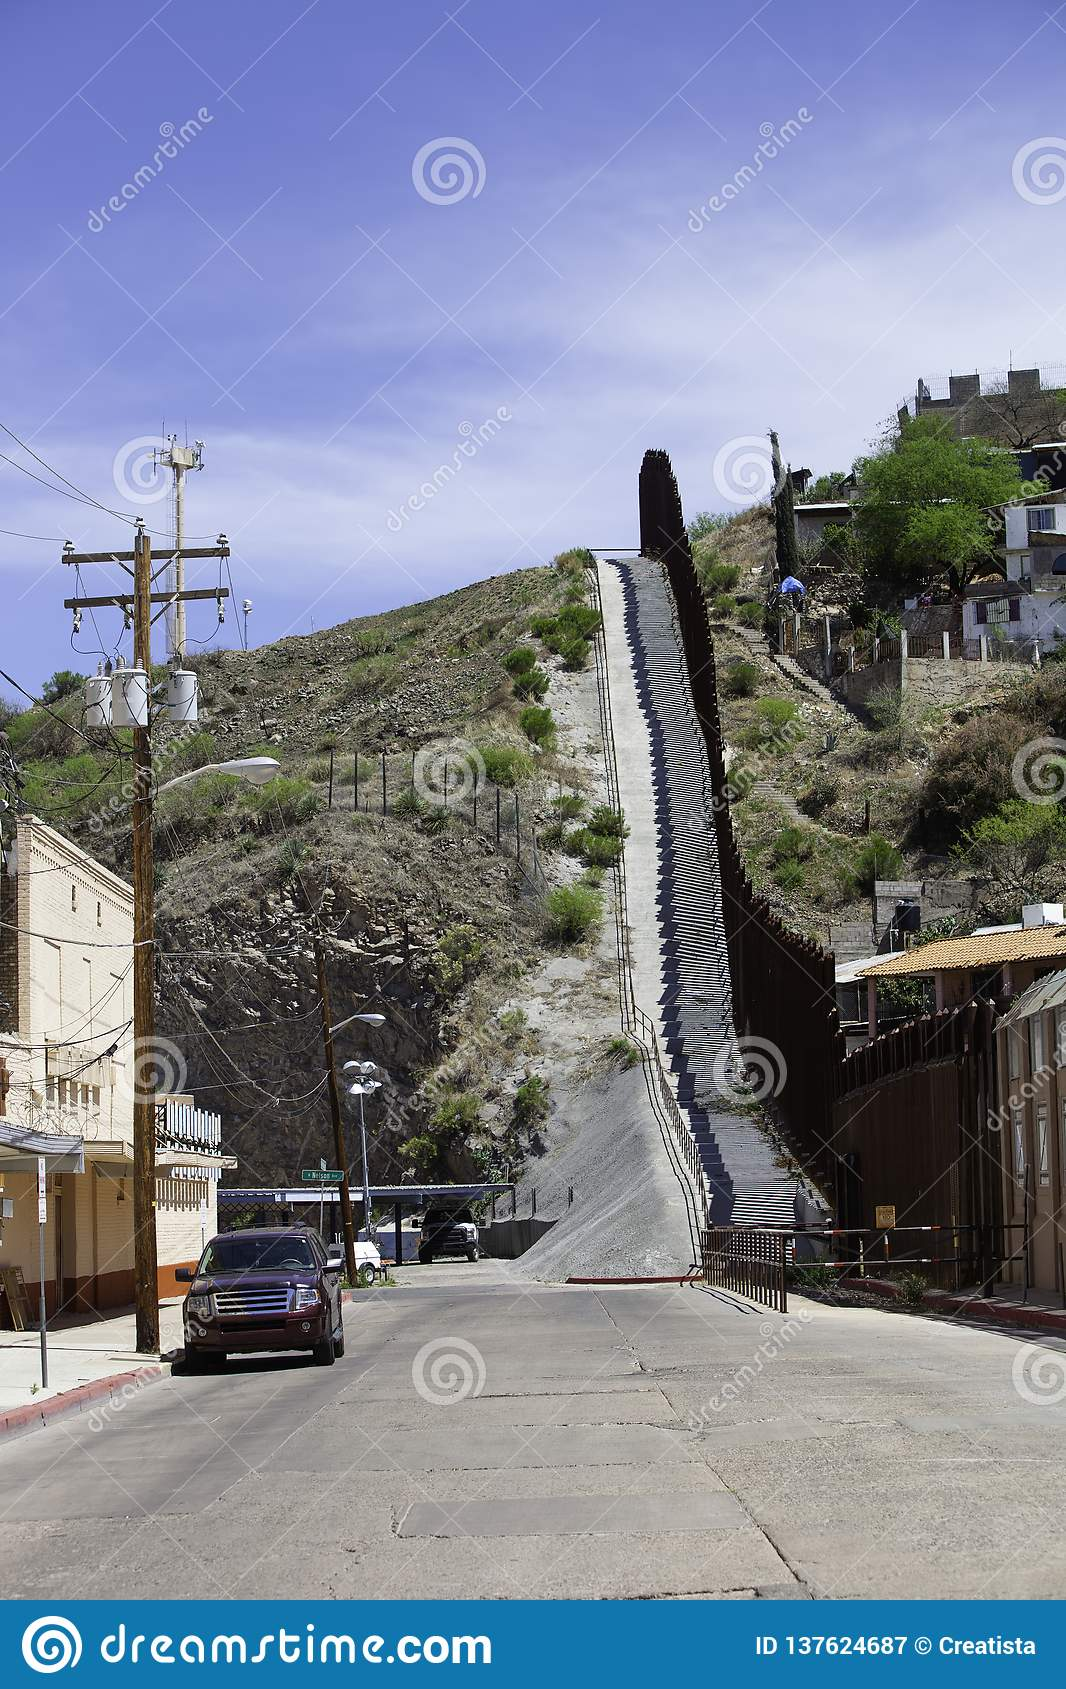 United States Border Wall with Mexico in Nogales Arizona